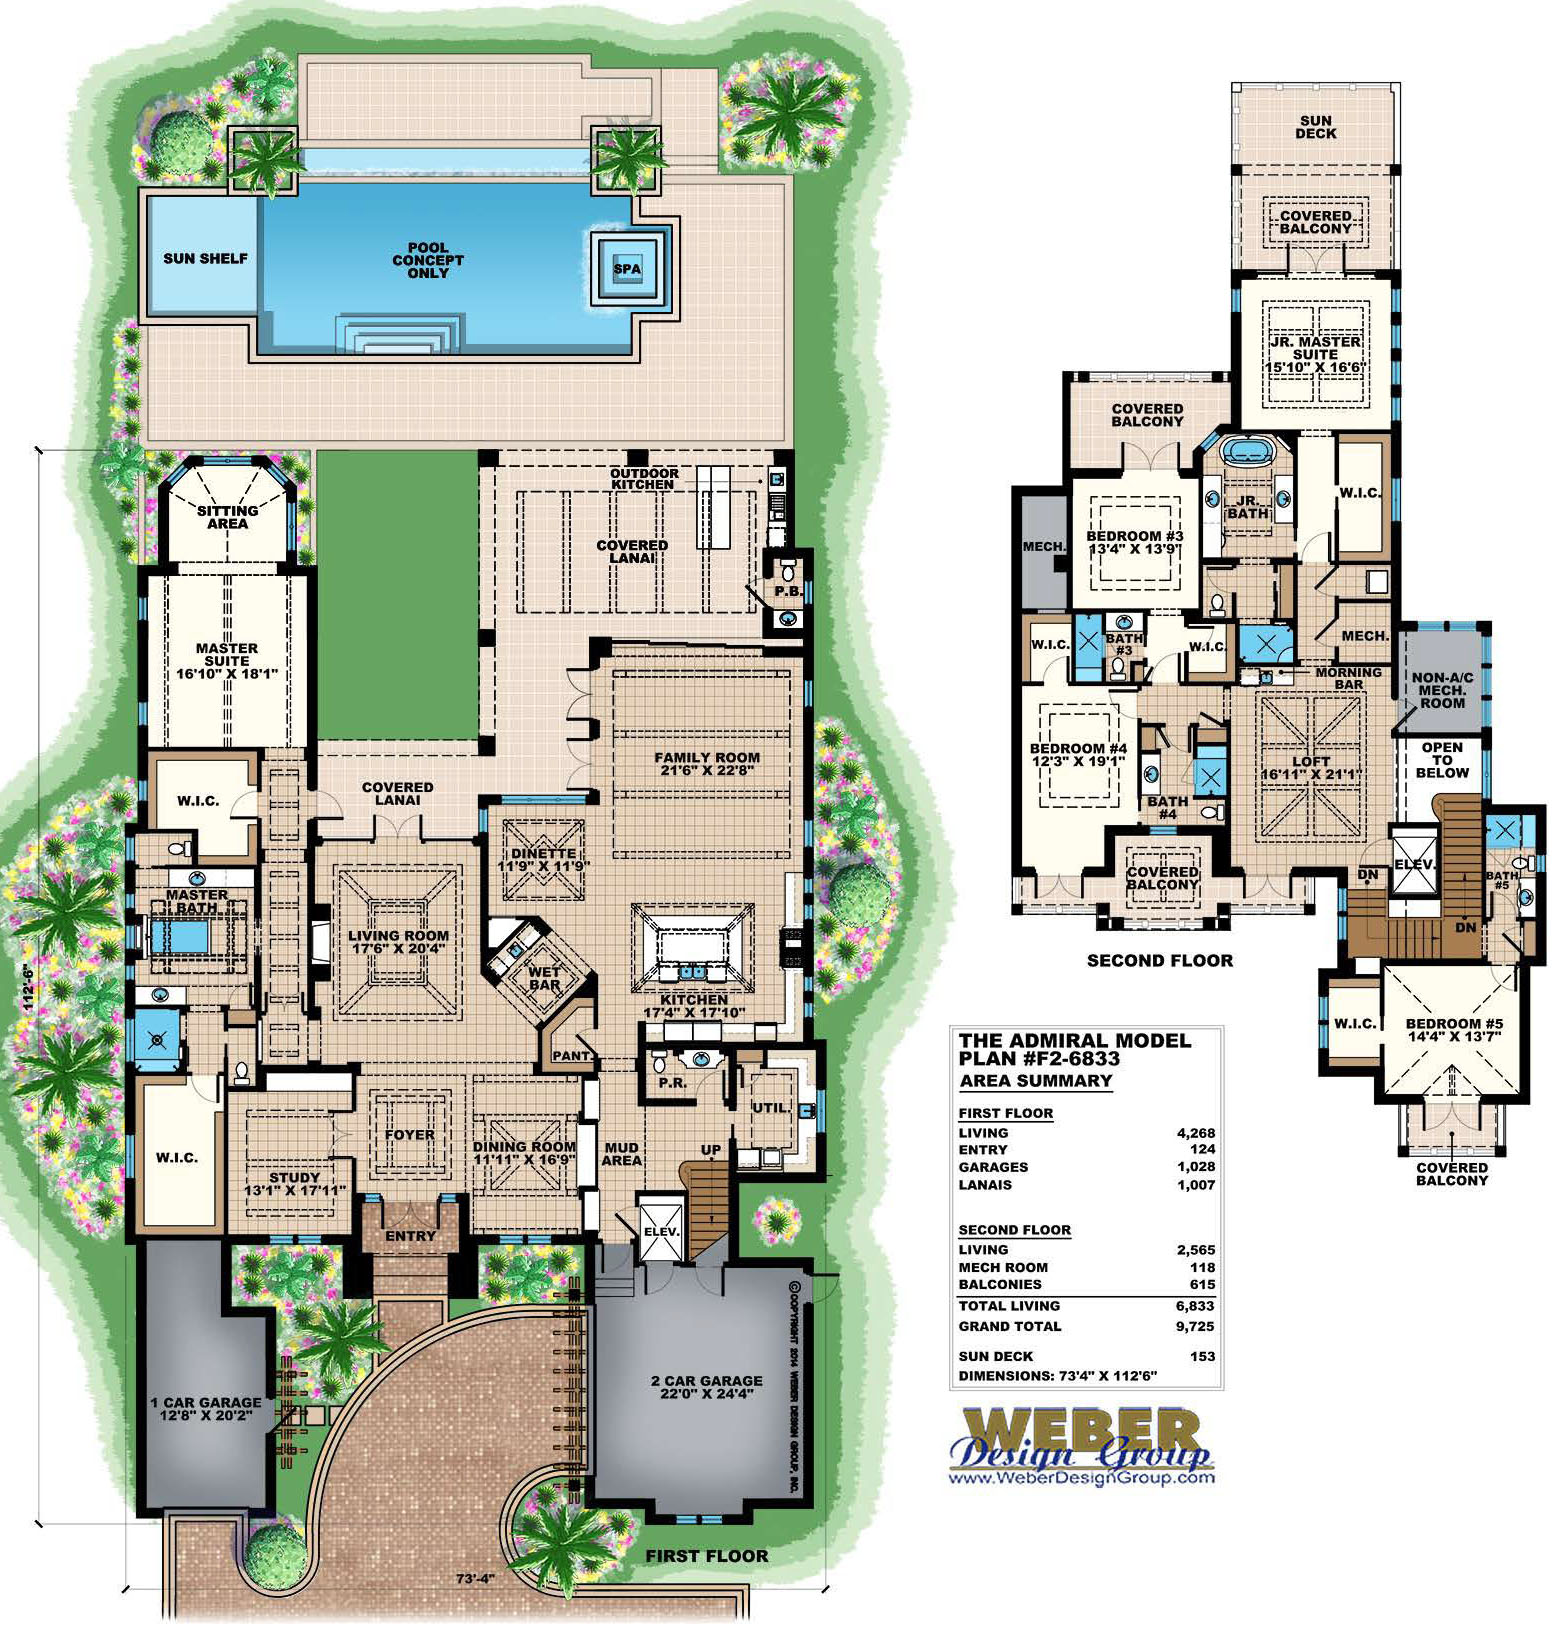 Luxury House Plans With Photos Of Interior Outdoor Living Pools - Floor plans for luxury homes